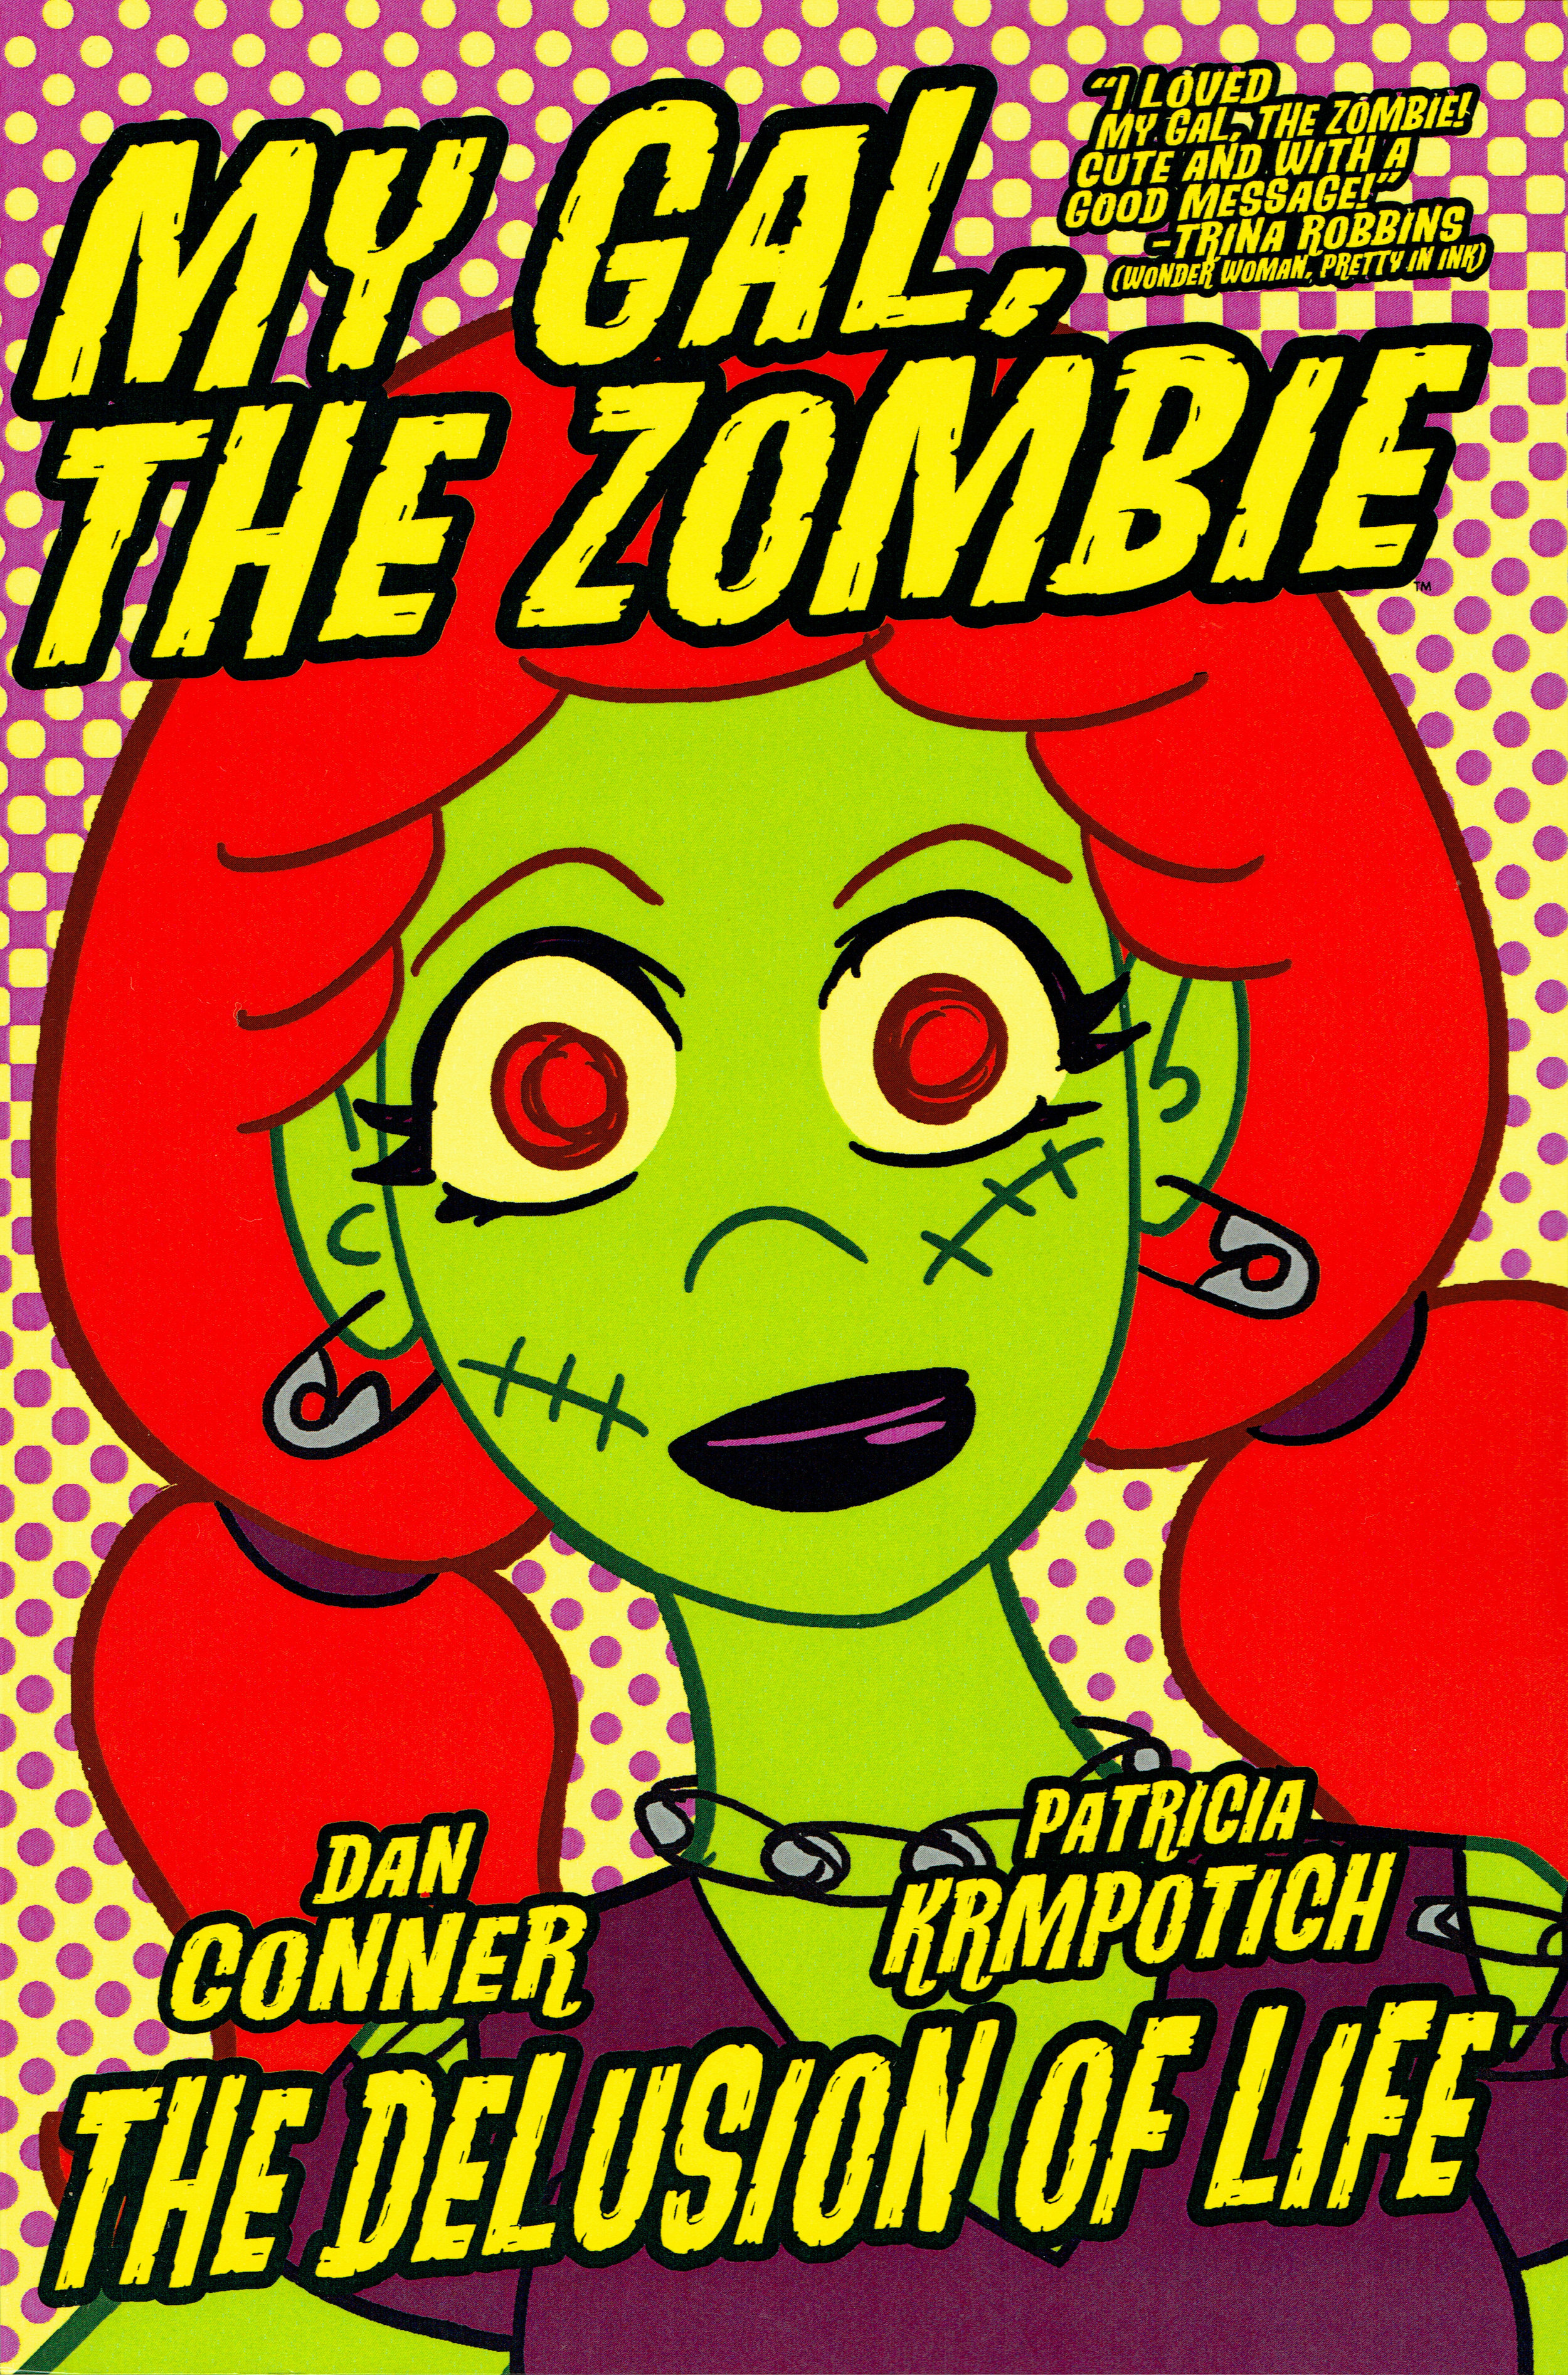 My Gal the Zombie: The Delusional Life from Crazy Good Comics.